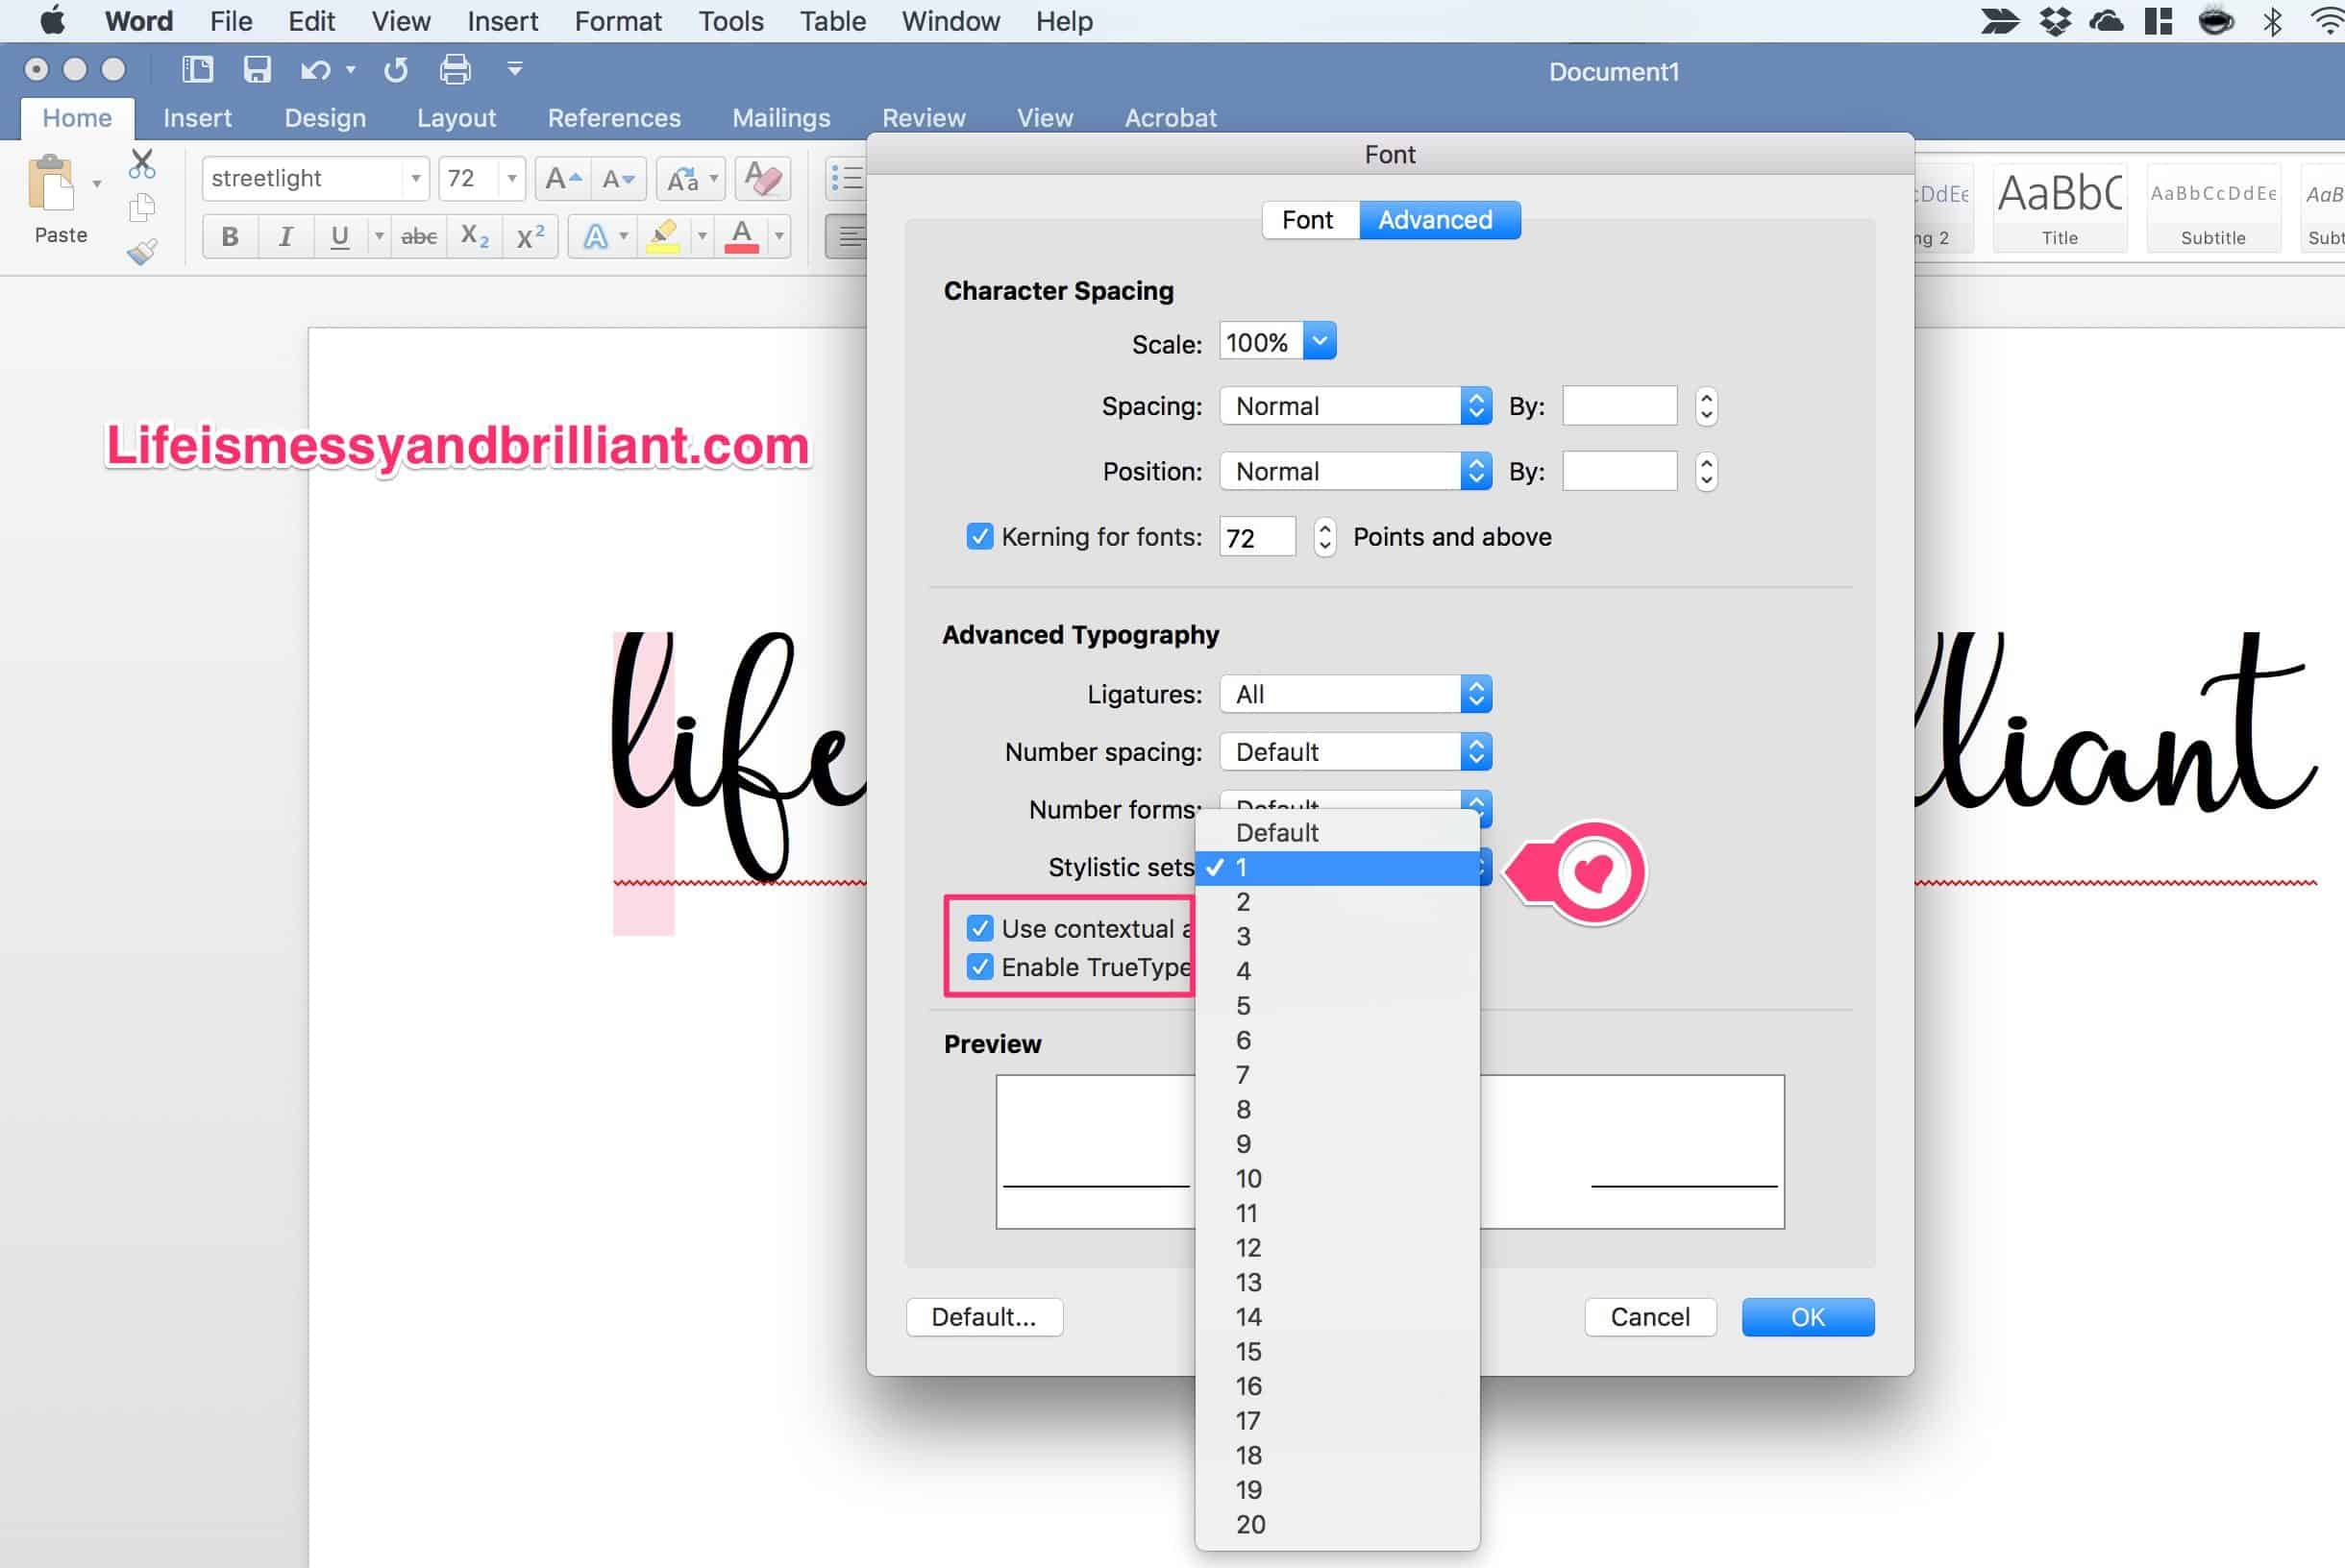 How to Add Styles to Fonts Using Microsoft Word